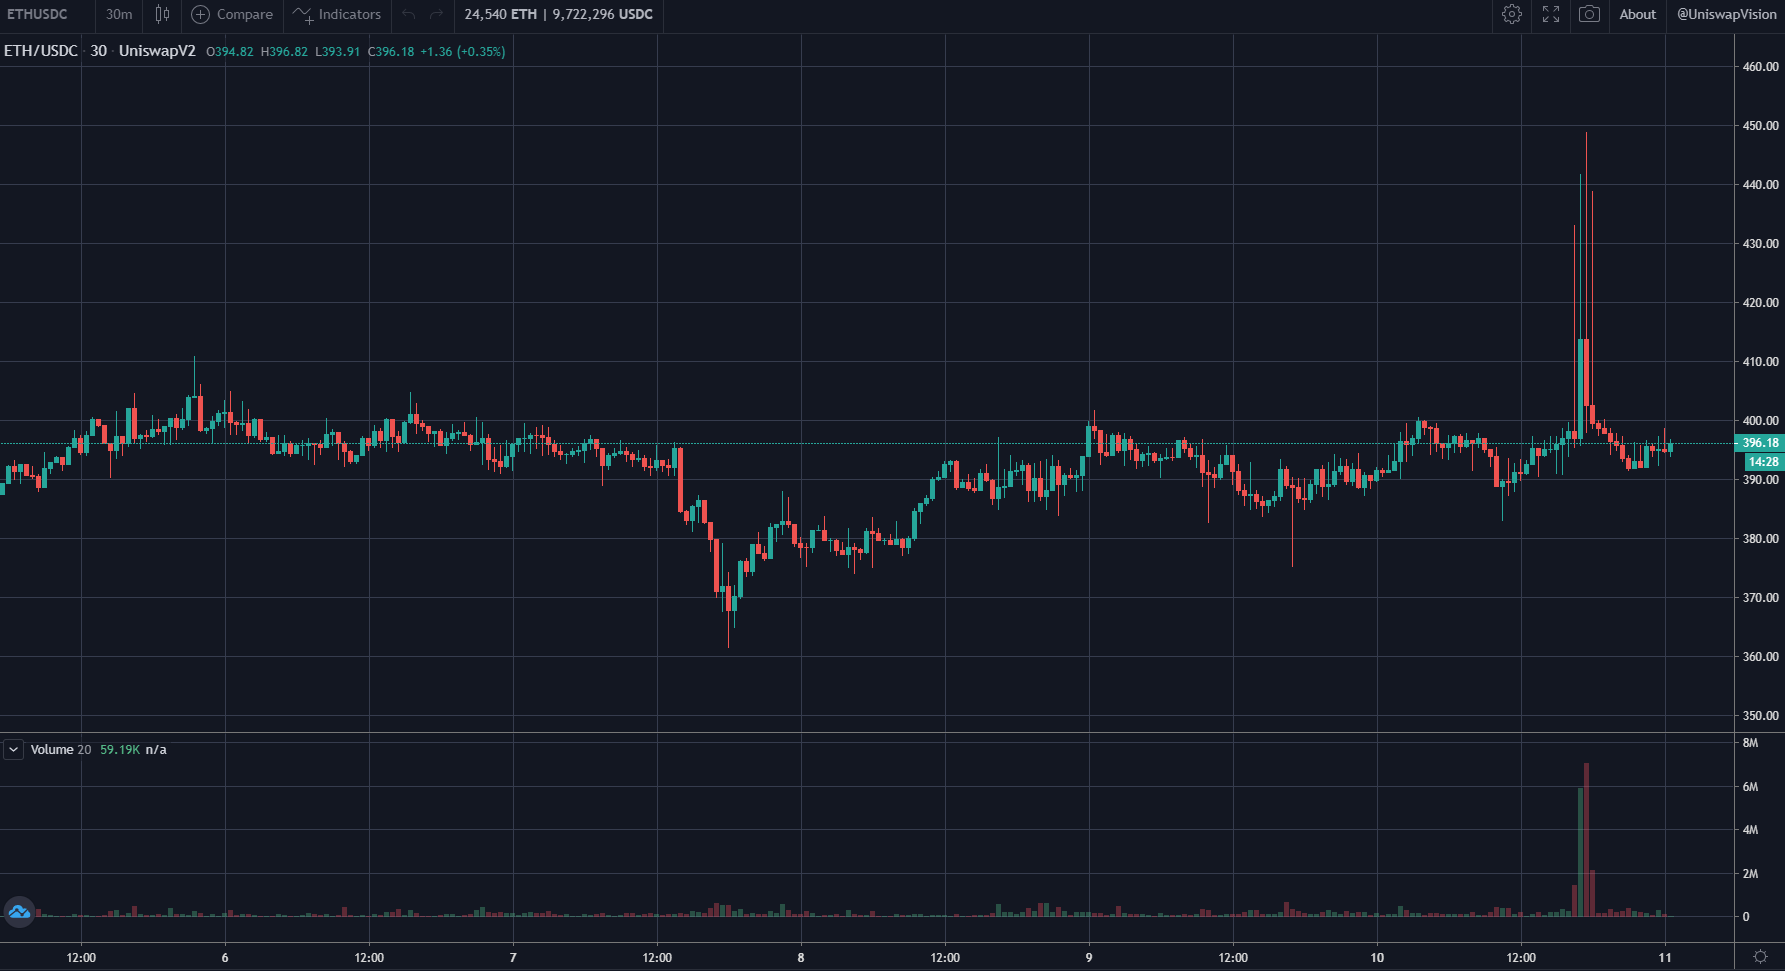 ETH/USDT price chart by UniswapVision